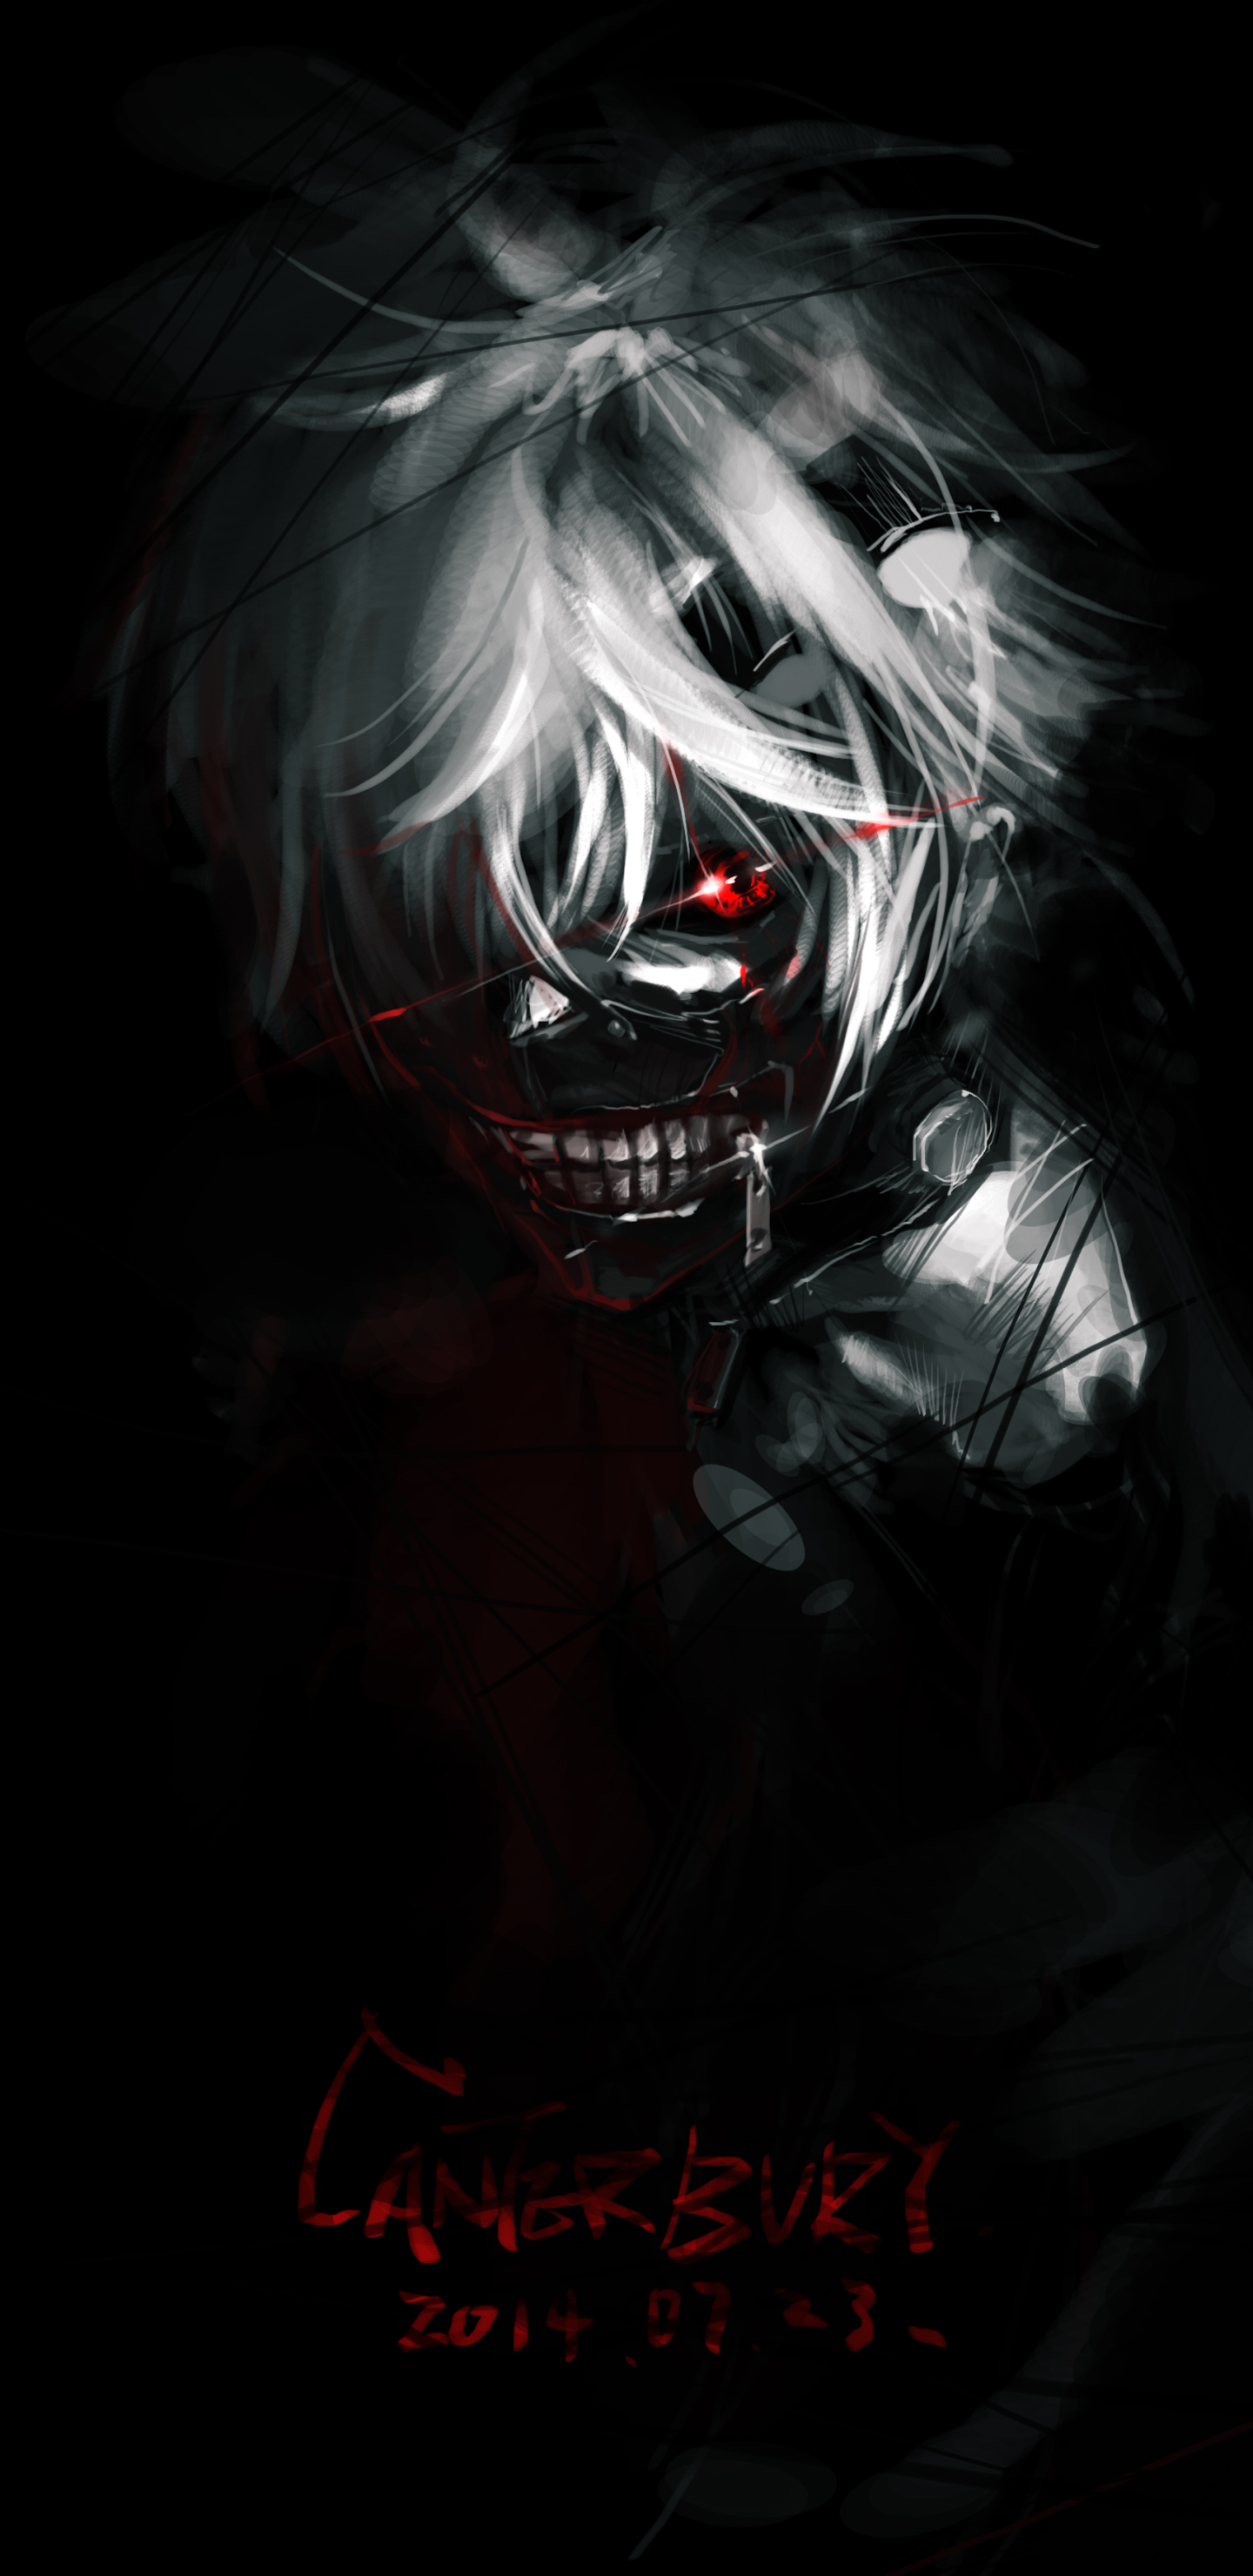 11 Tokyo Ghoul Samsung Galaxy S8 1440x2960 Wallpapers Mobile Abyss